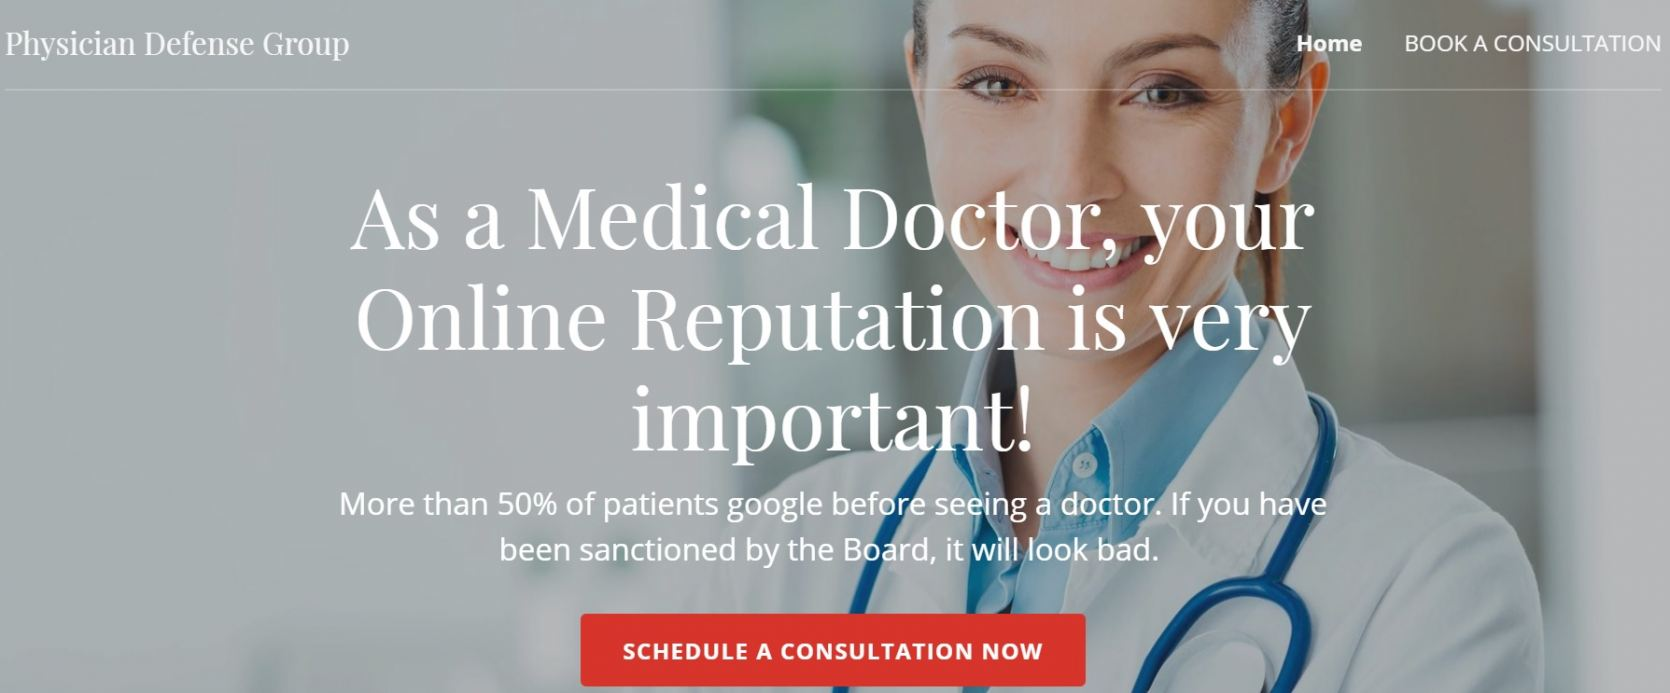 Website Physician Defense Group